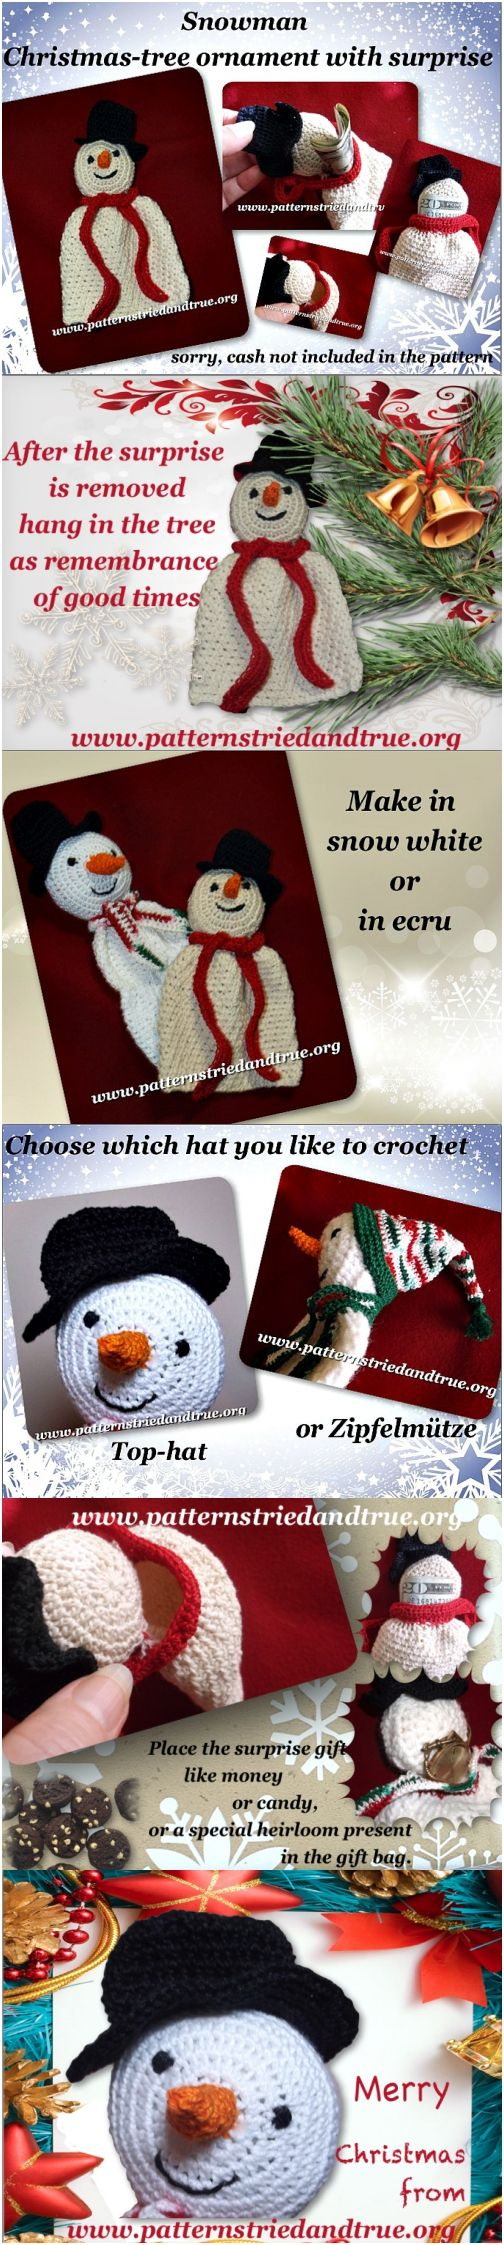 Make this Christmas Special with a handmade ornament that holds a suprise